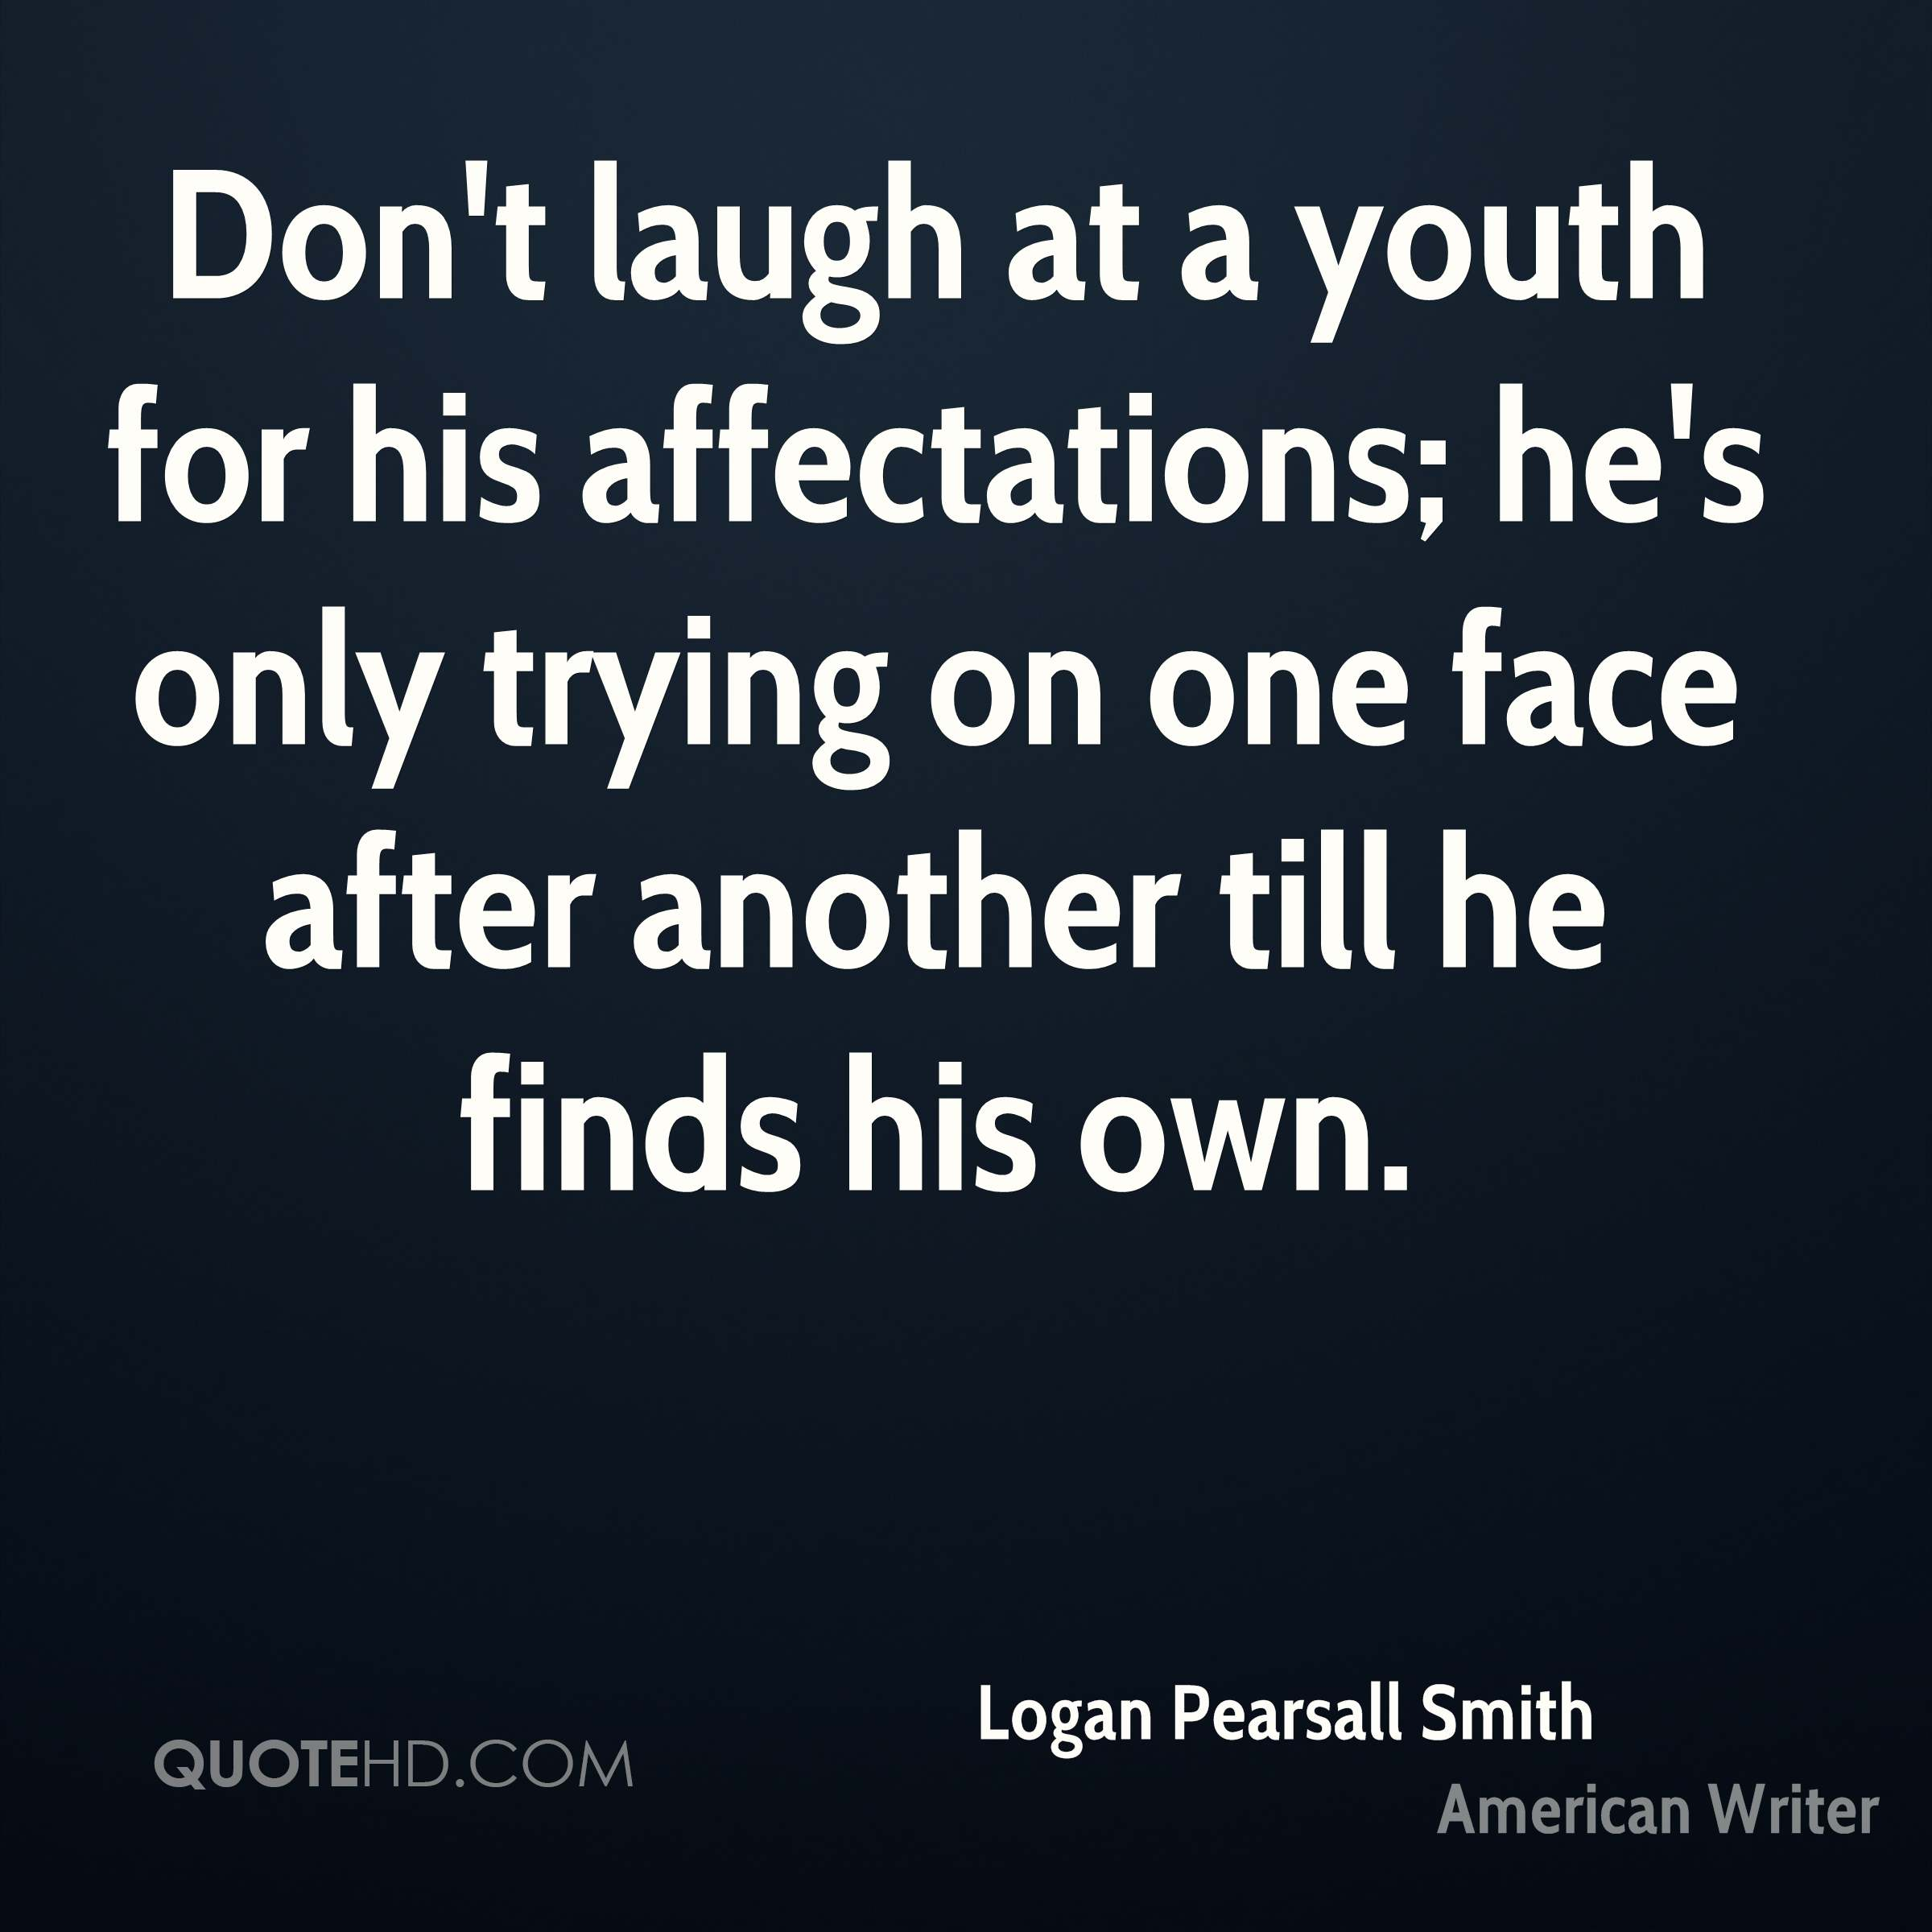 Don't laugh at a youth for his affectations; he's only trying on one face after another till he finds his own.